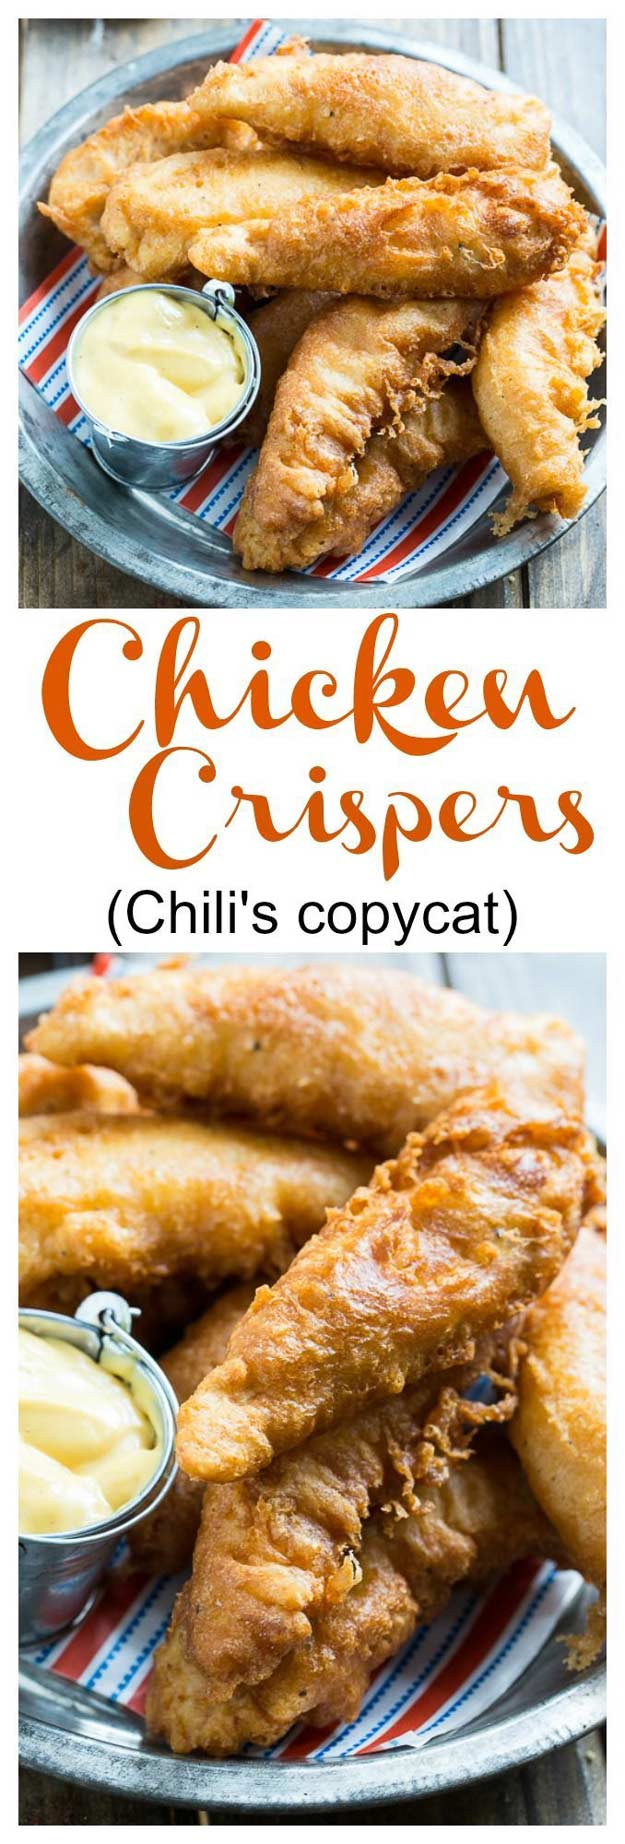 Copycat Recipes From Top Restaurants. Best Recipe Knockoffs from Chipotle, Starbucks, Olive Garden, Cinabbon, Cracker Barrel, Taco Bell, Cheesecake Factory, KFC, Mc Donalds, Red Lobster, Panda Express | Chicken Crispers Chilis Copycat #recipes #copycatrecipes